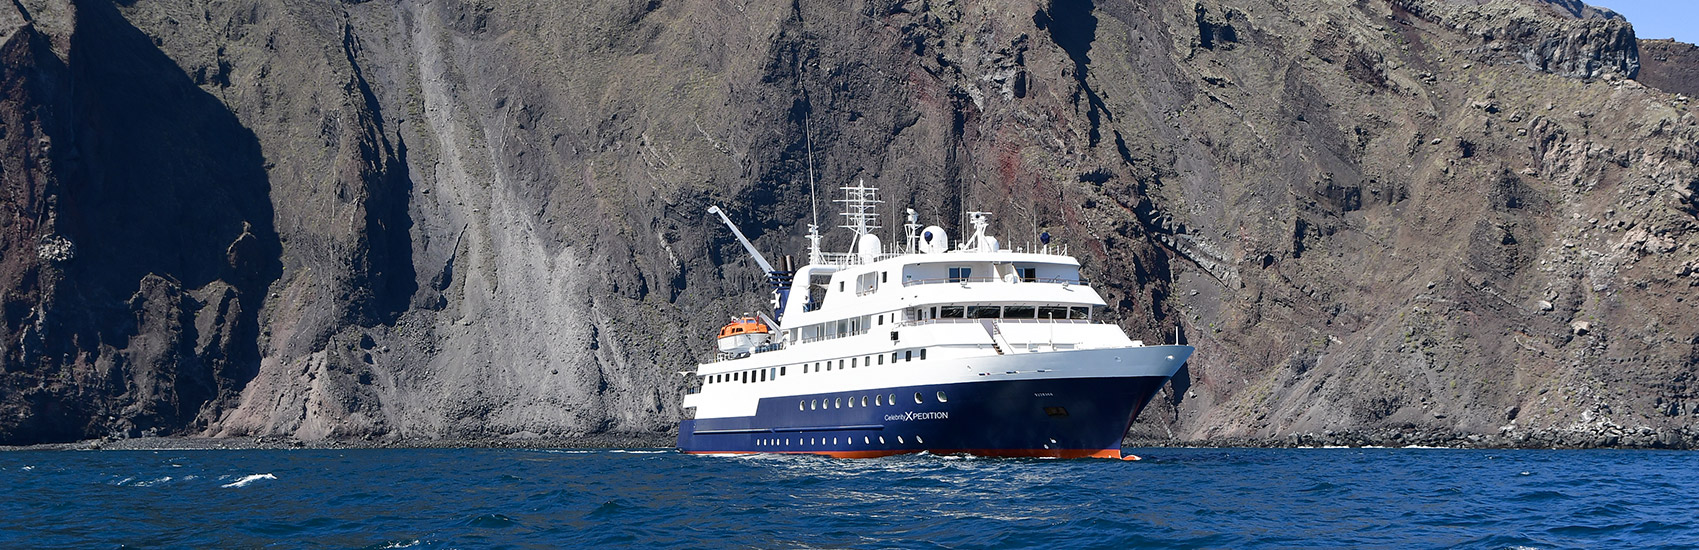 When to explore the Galapagos Islands 5